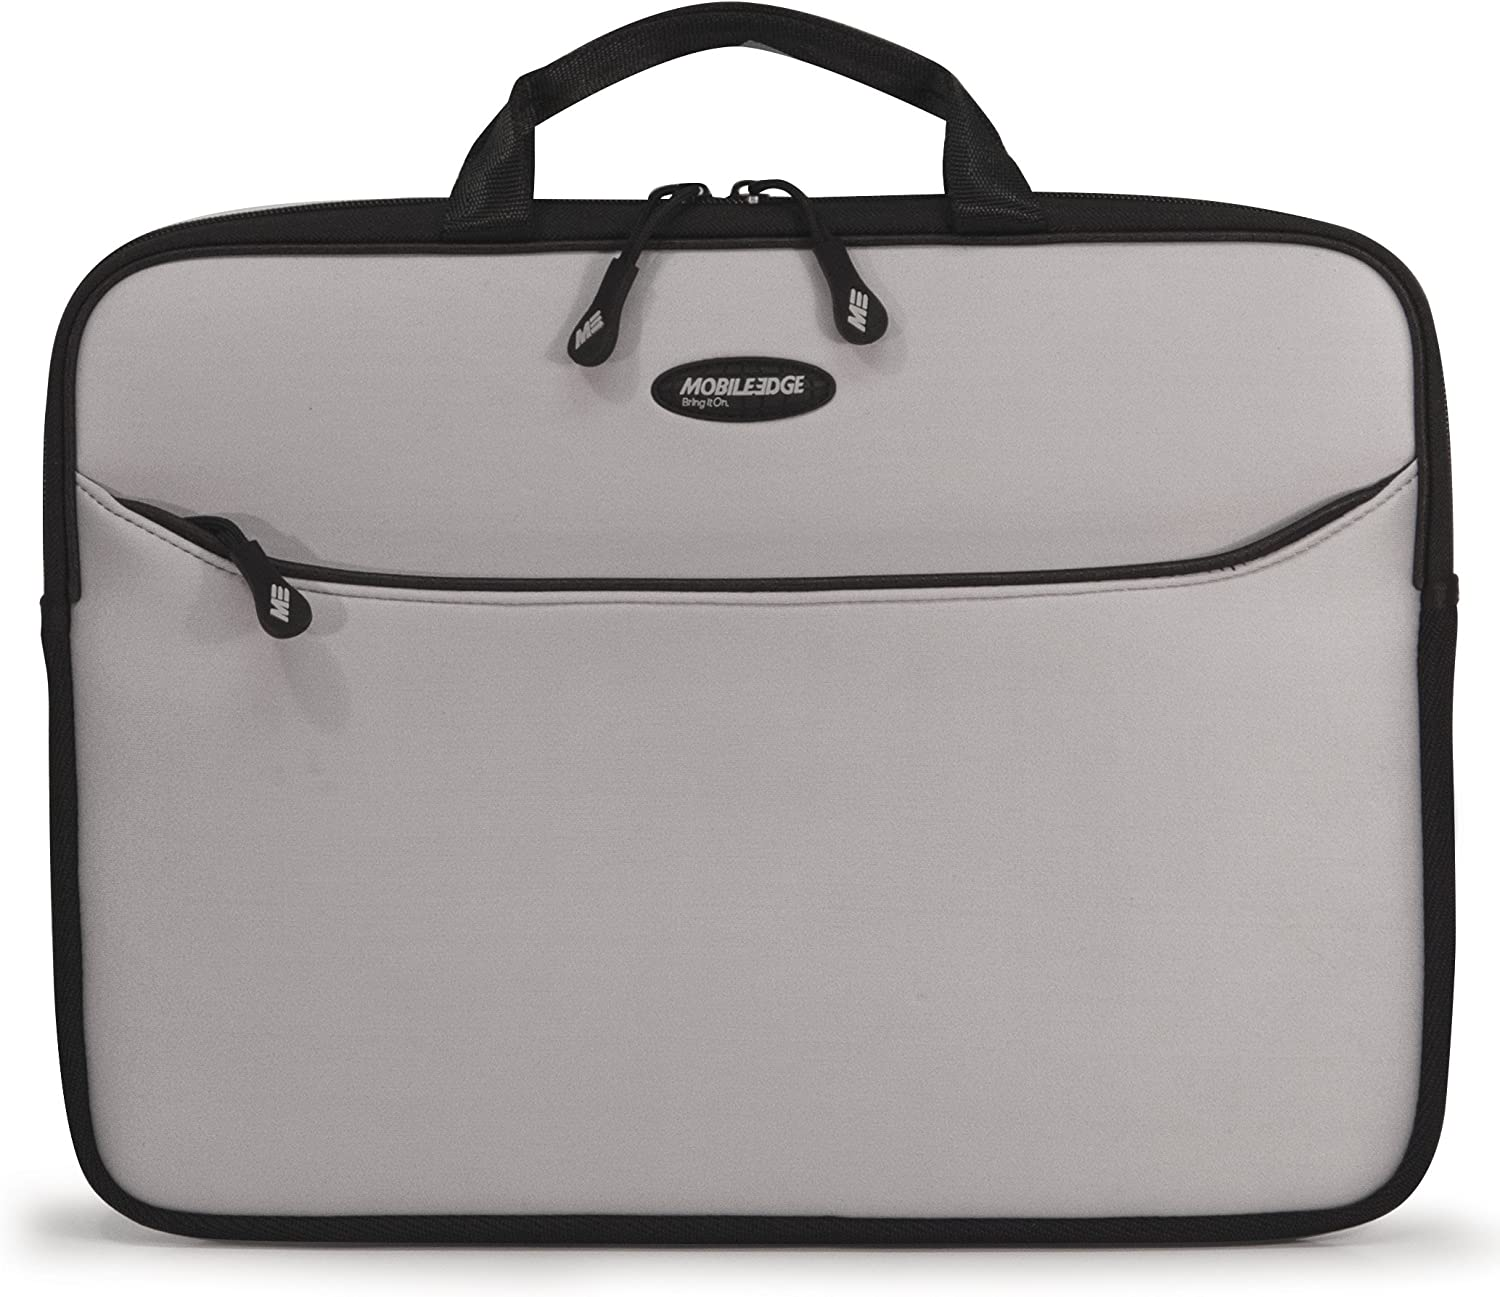 Mobile low-pricing Edge Silver SlipSuit Cushioned MacBook Laptop Sleeve Max 69% OFF EVA